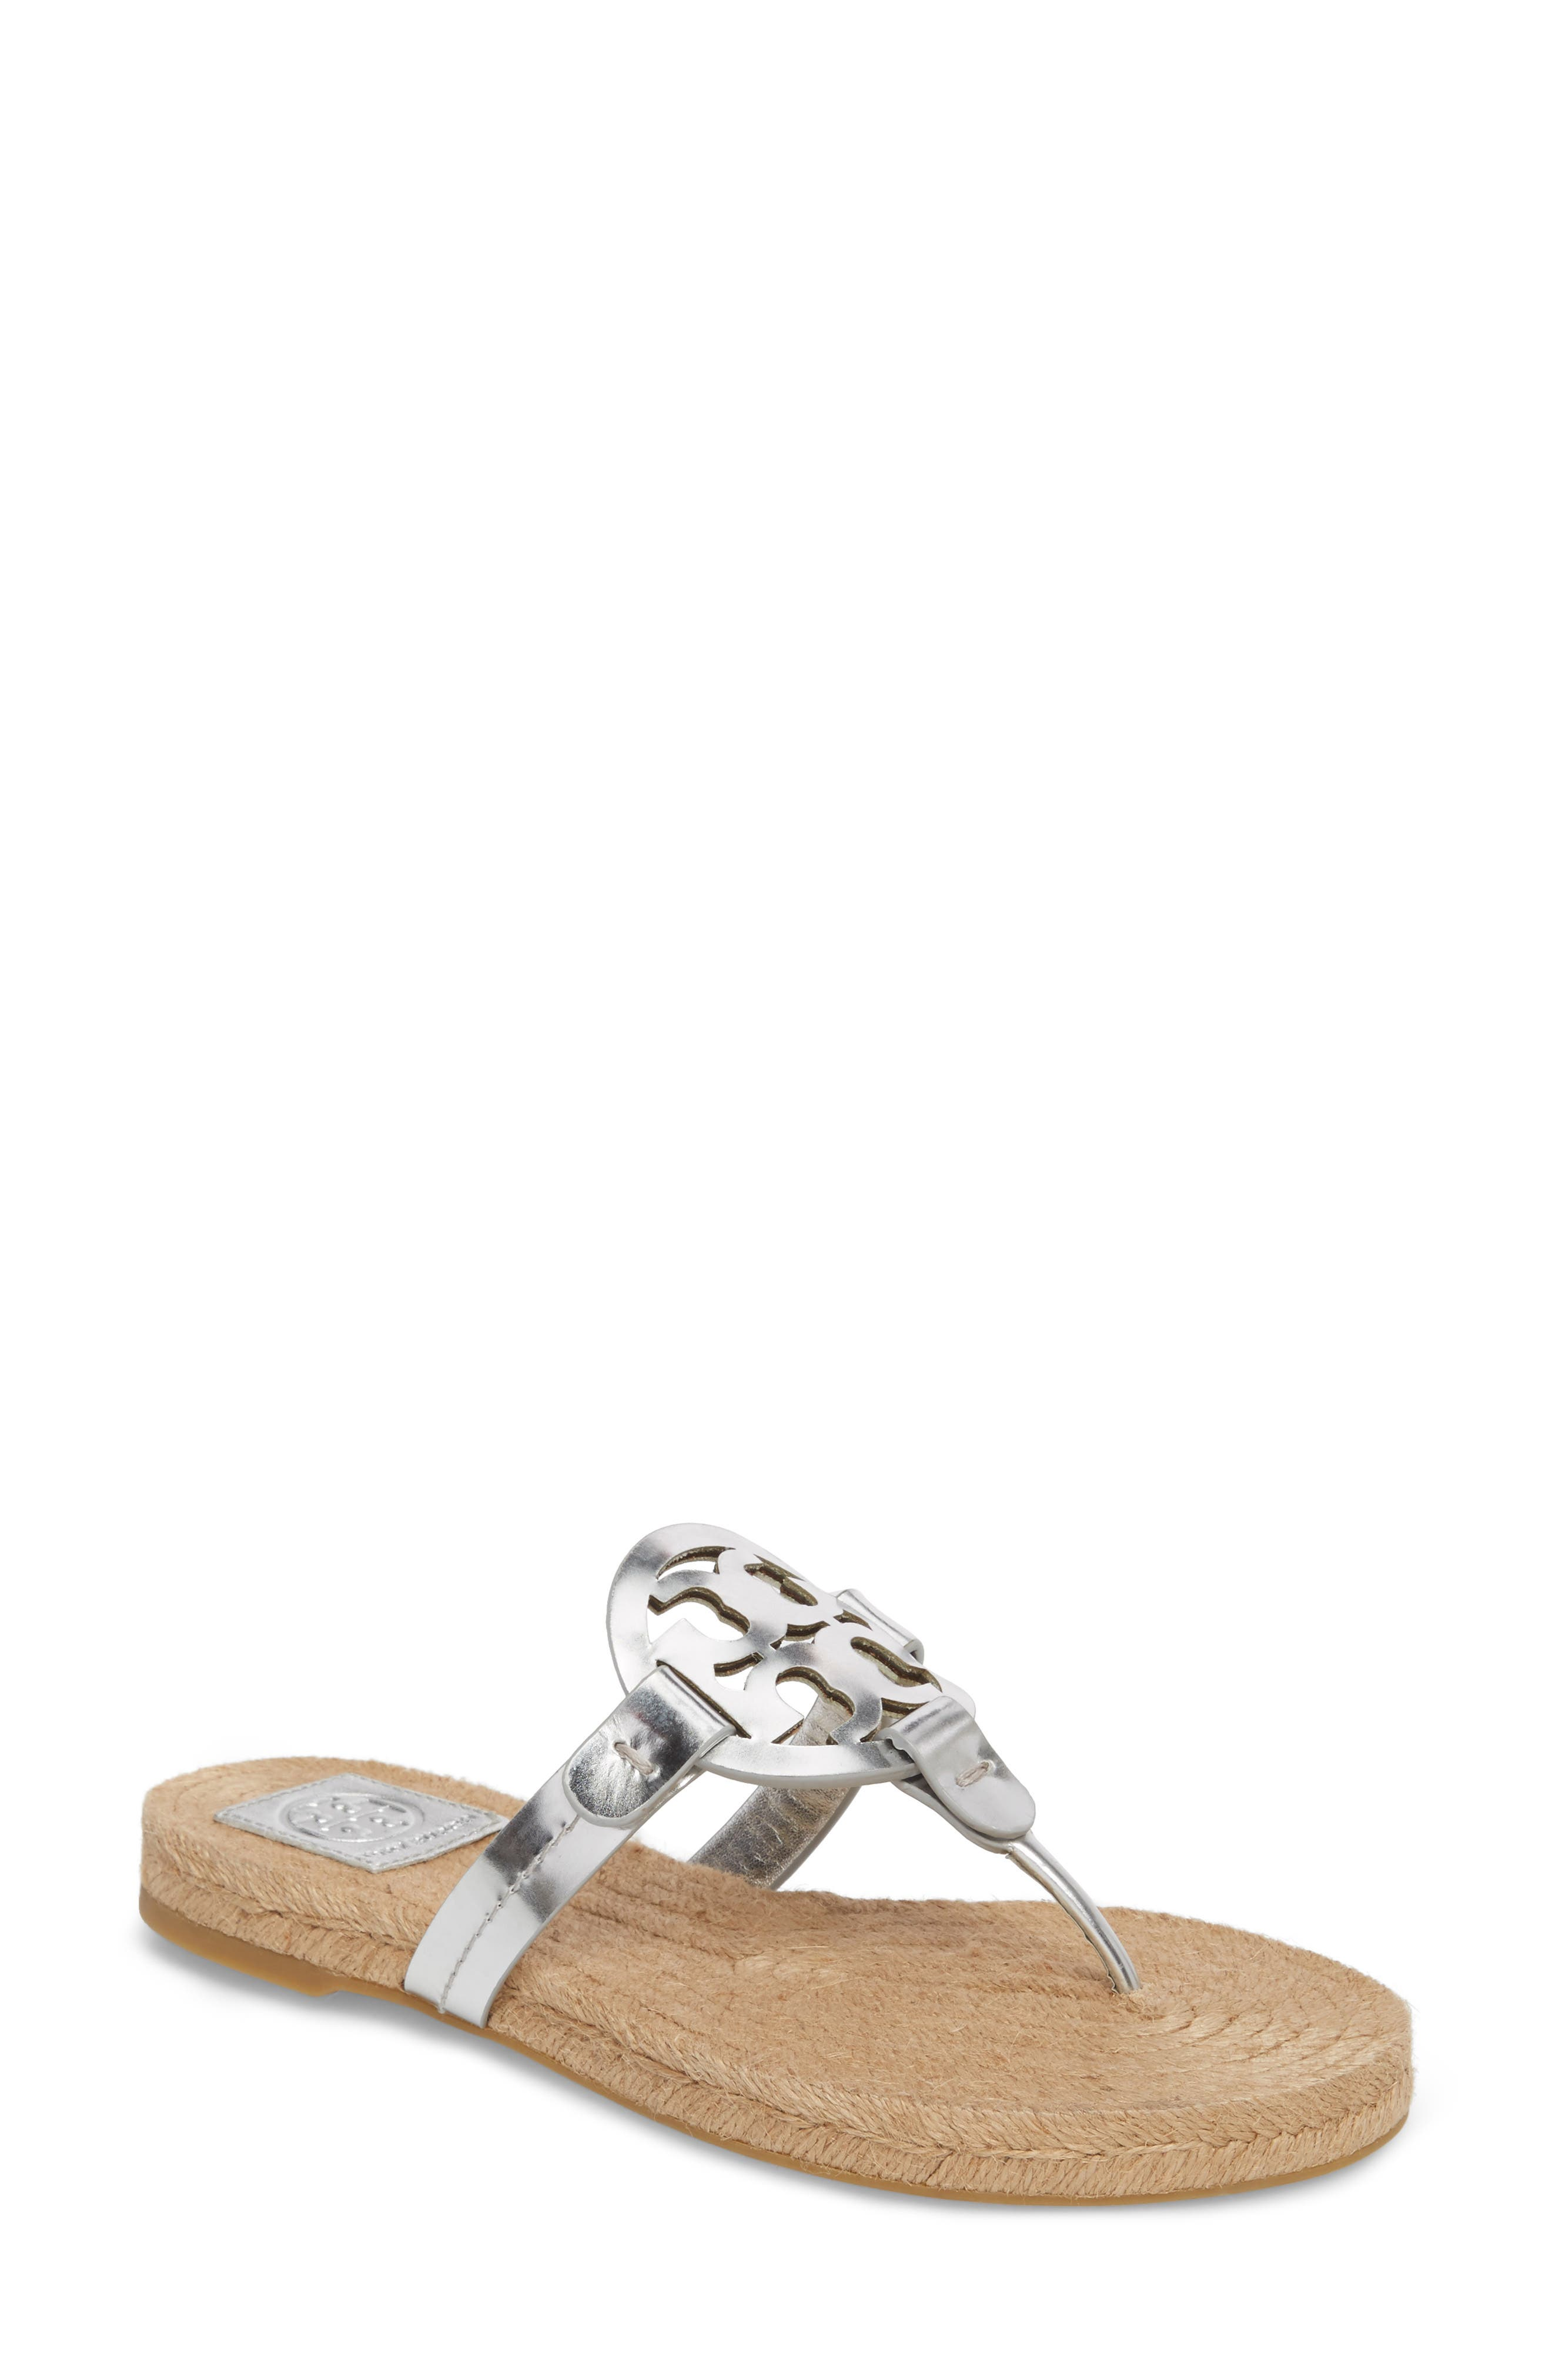 Tory Burch Woman Embellished Embroidered Leather Sandals White Size 5.5 Tory Burch dU1pz